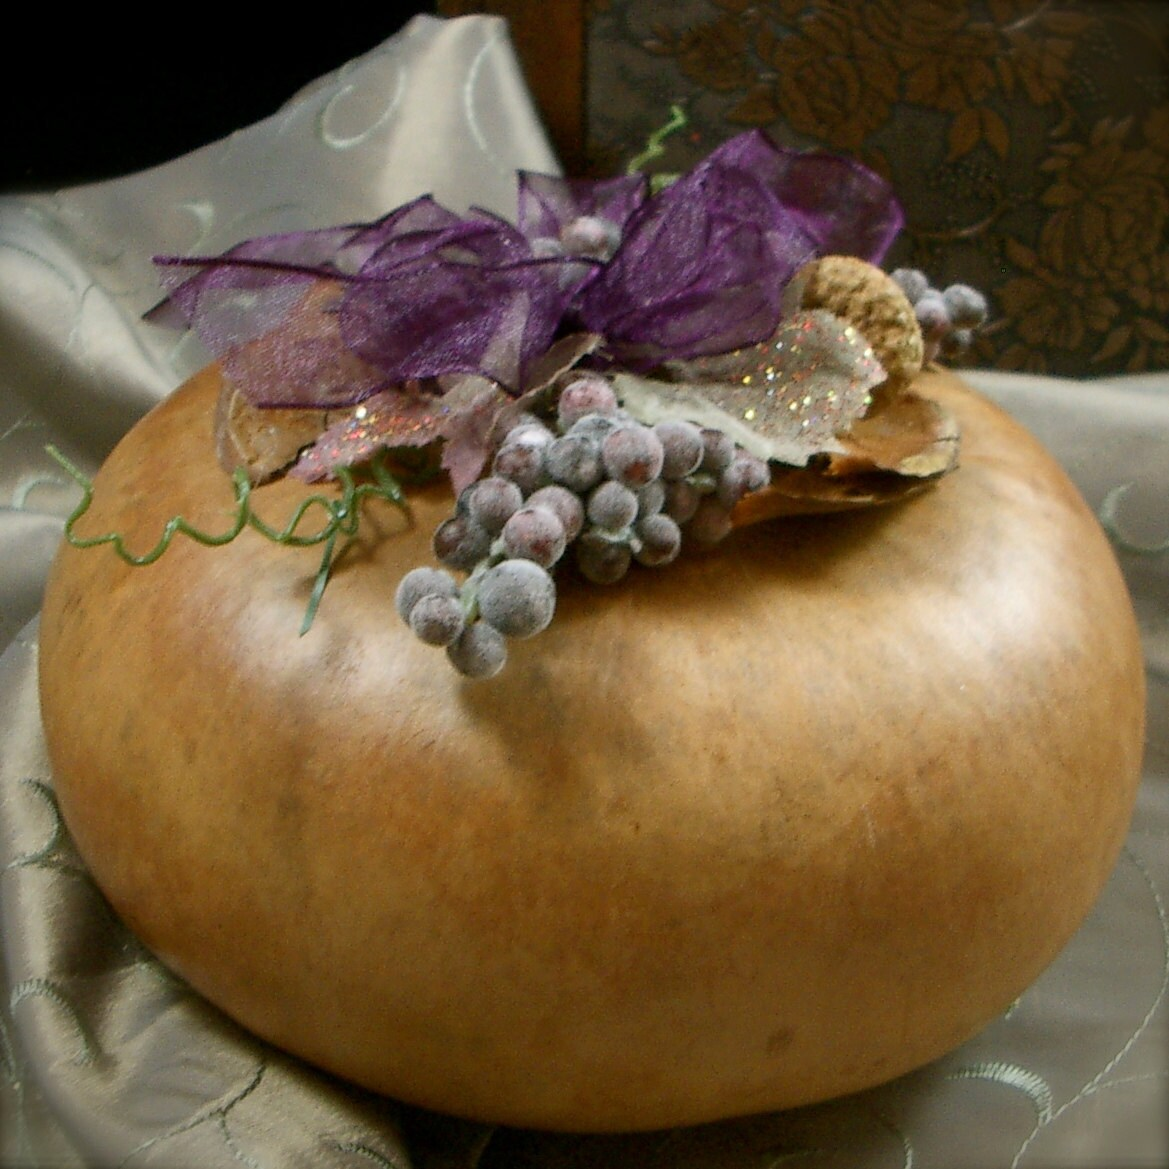 Decorative Natural Gourd for your Table with grape clusters - mymandycrafts